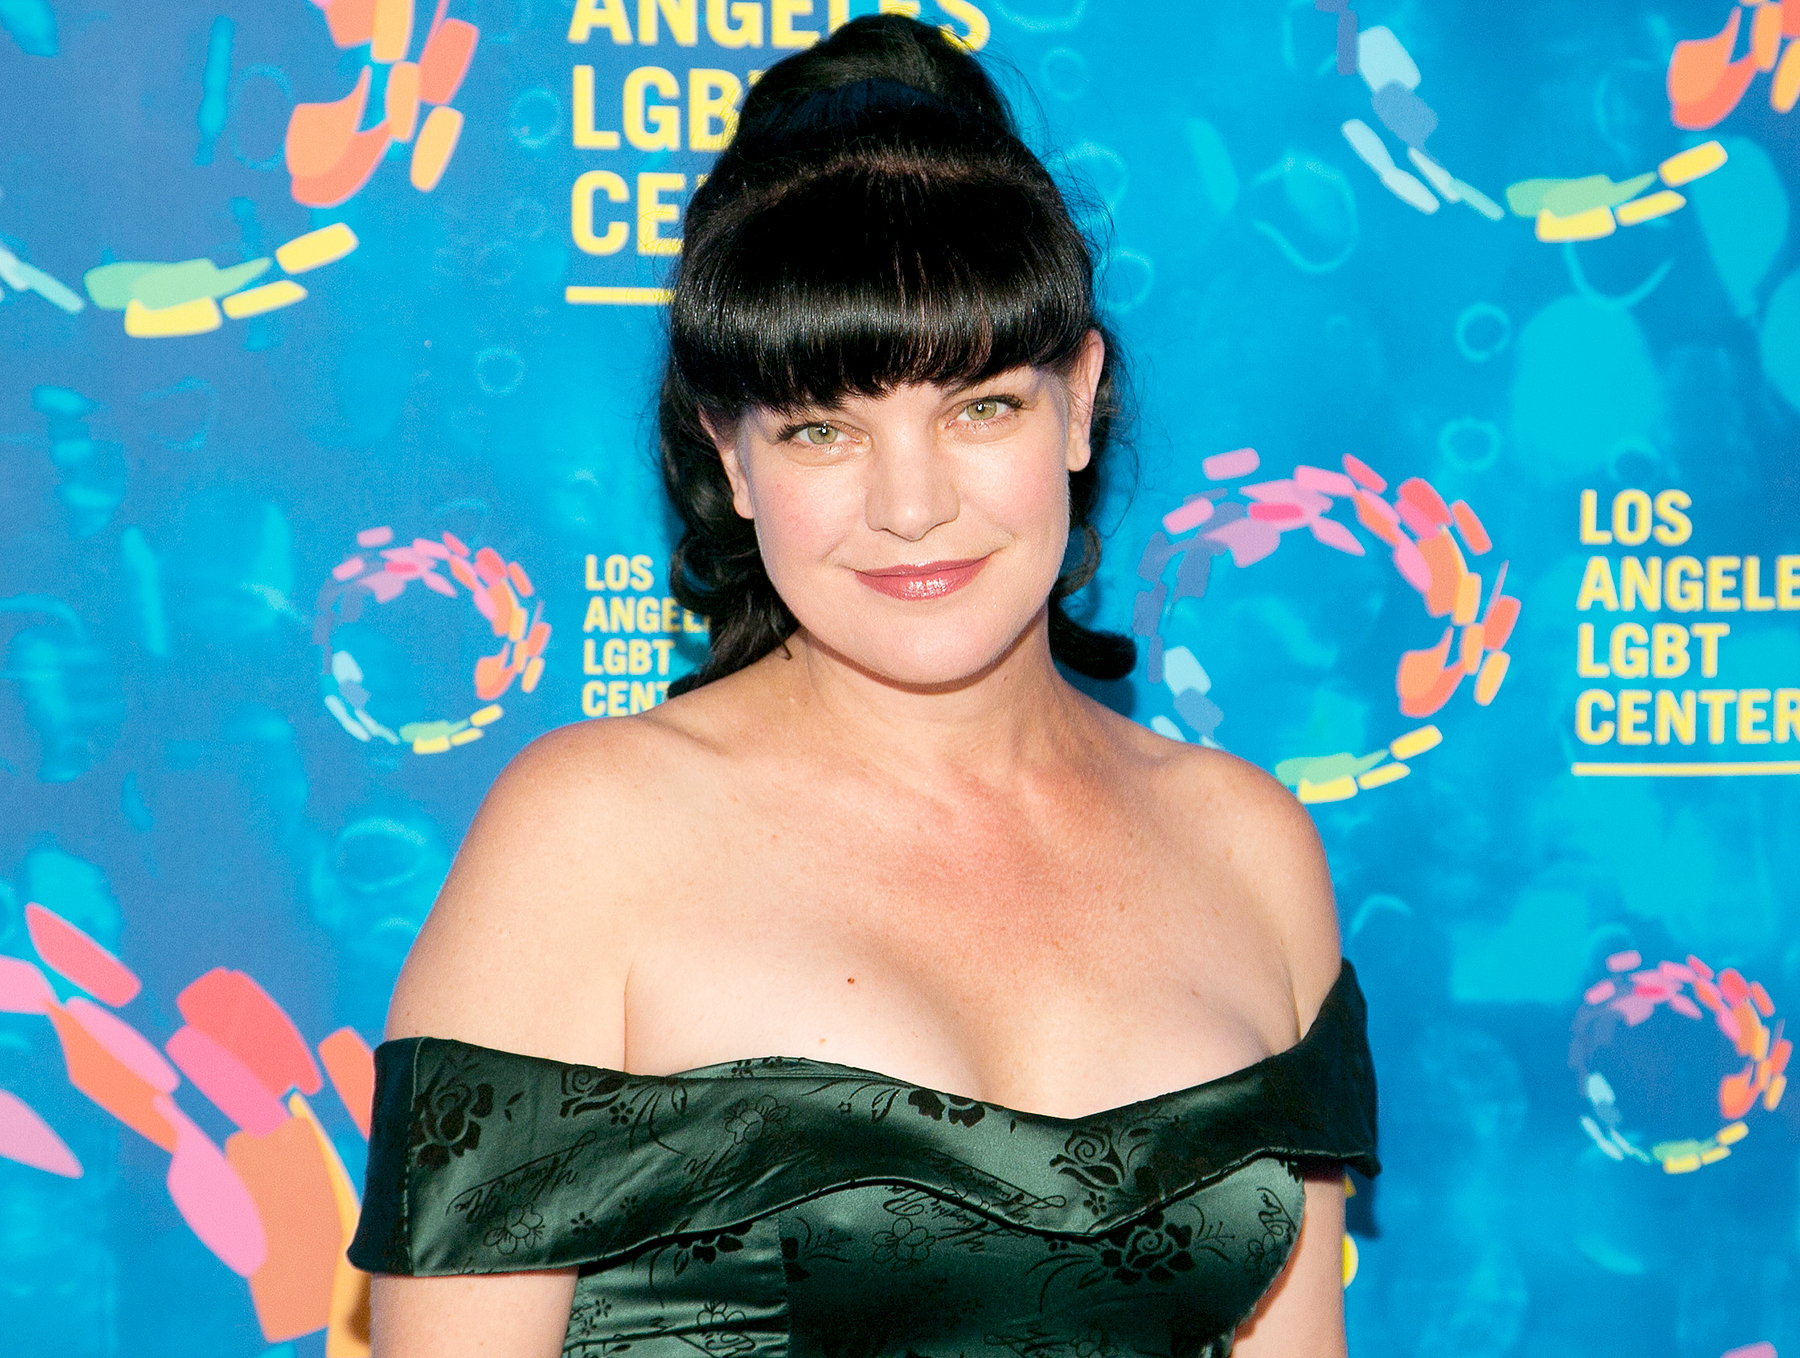 Pauley Perrette attends Los Angeles LGBT Center's 47th Anniversary Gala Vanguard Awards at Pacific Design Center on September 24, 2016 in West Hollywood, California.